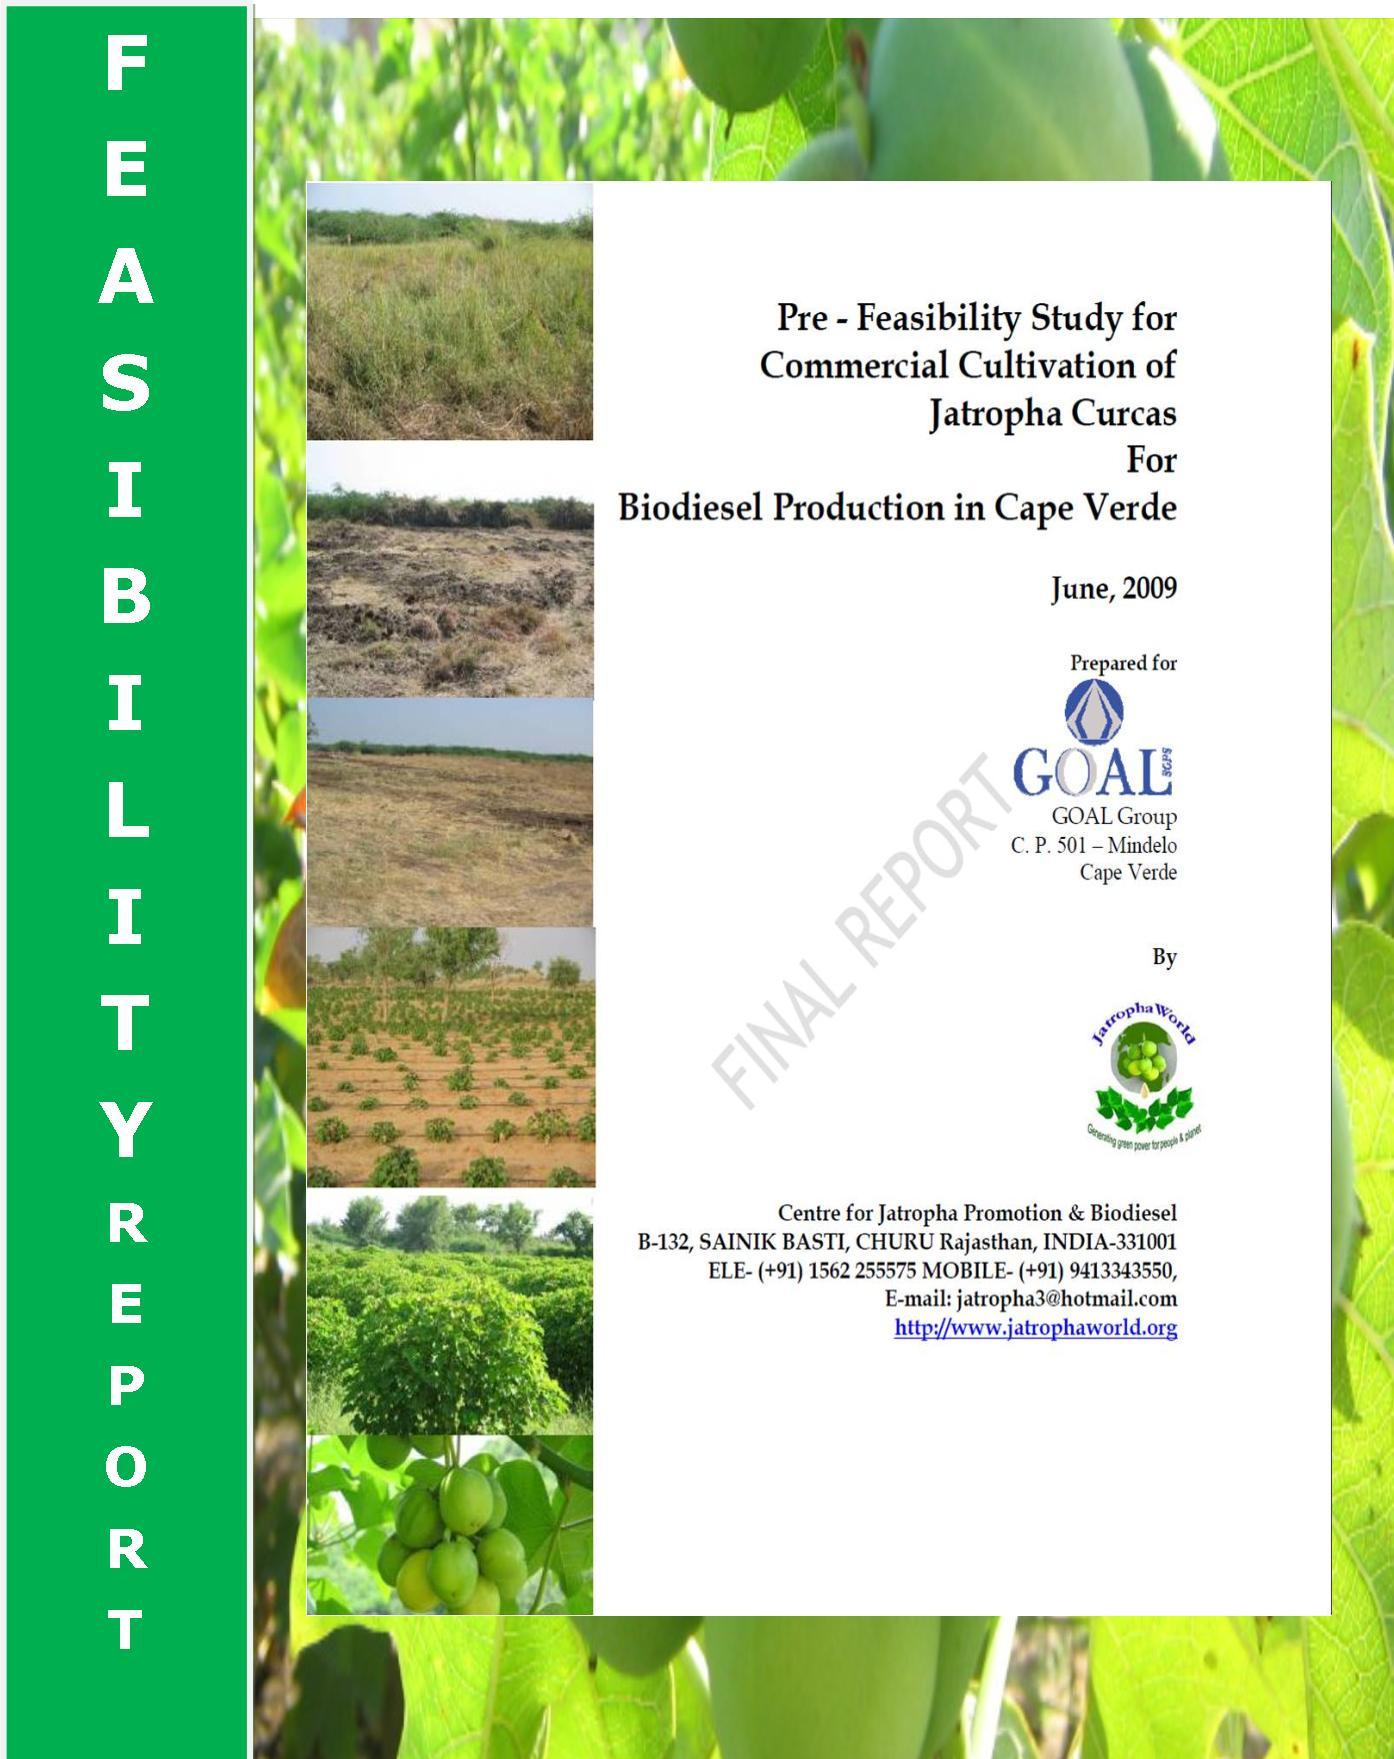 biodiesel technology and business opportunities Opportunities in biotechnology and business it is likely that this industry will mature and expand significantly to provide excellent opportunities for students.